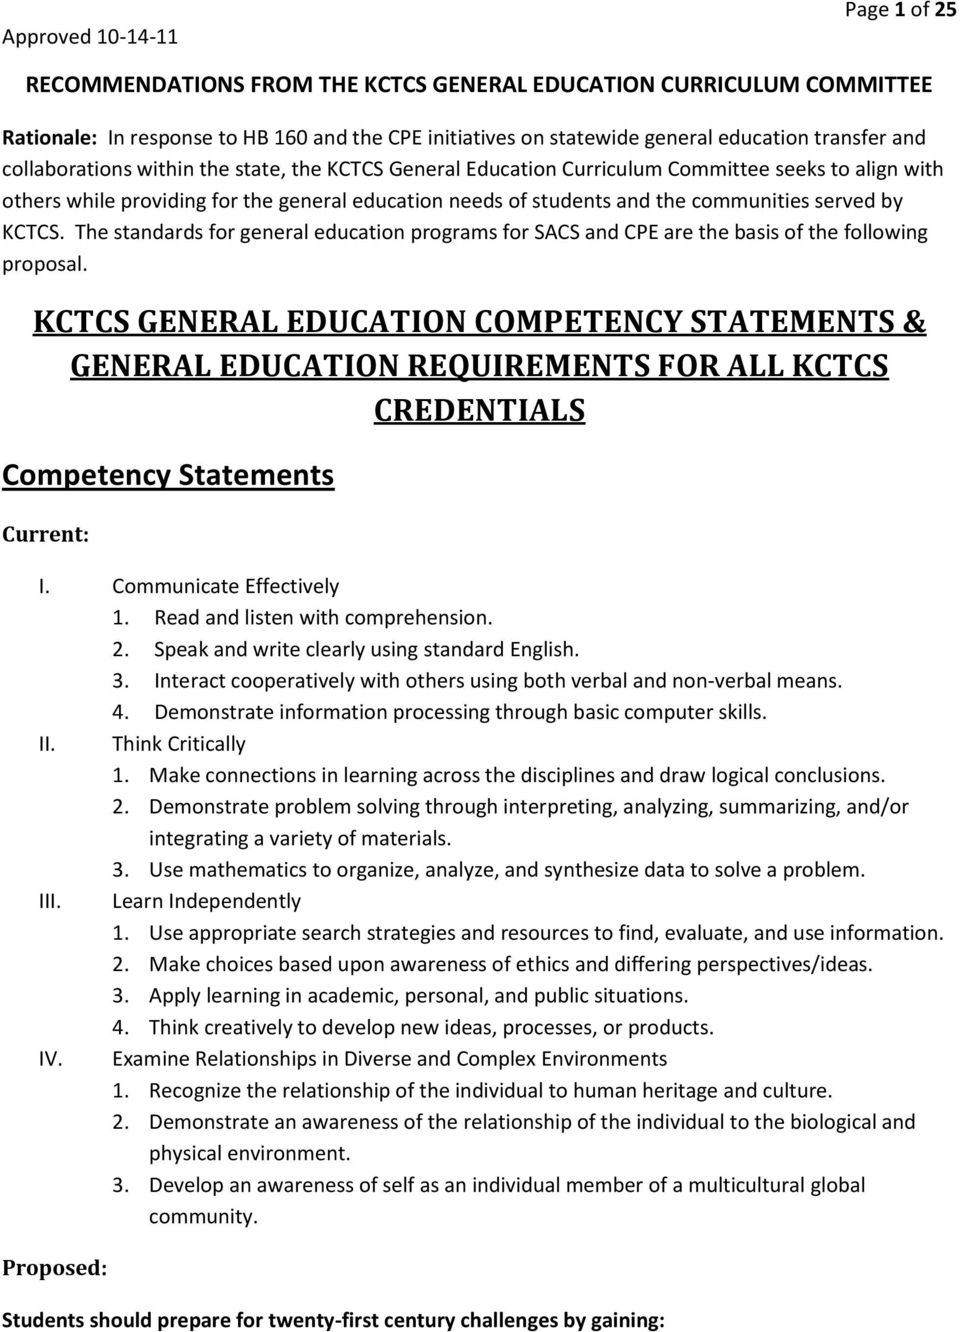 The standards for general education programs for SACS and CPE are the basis of the following proposal.